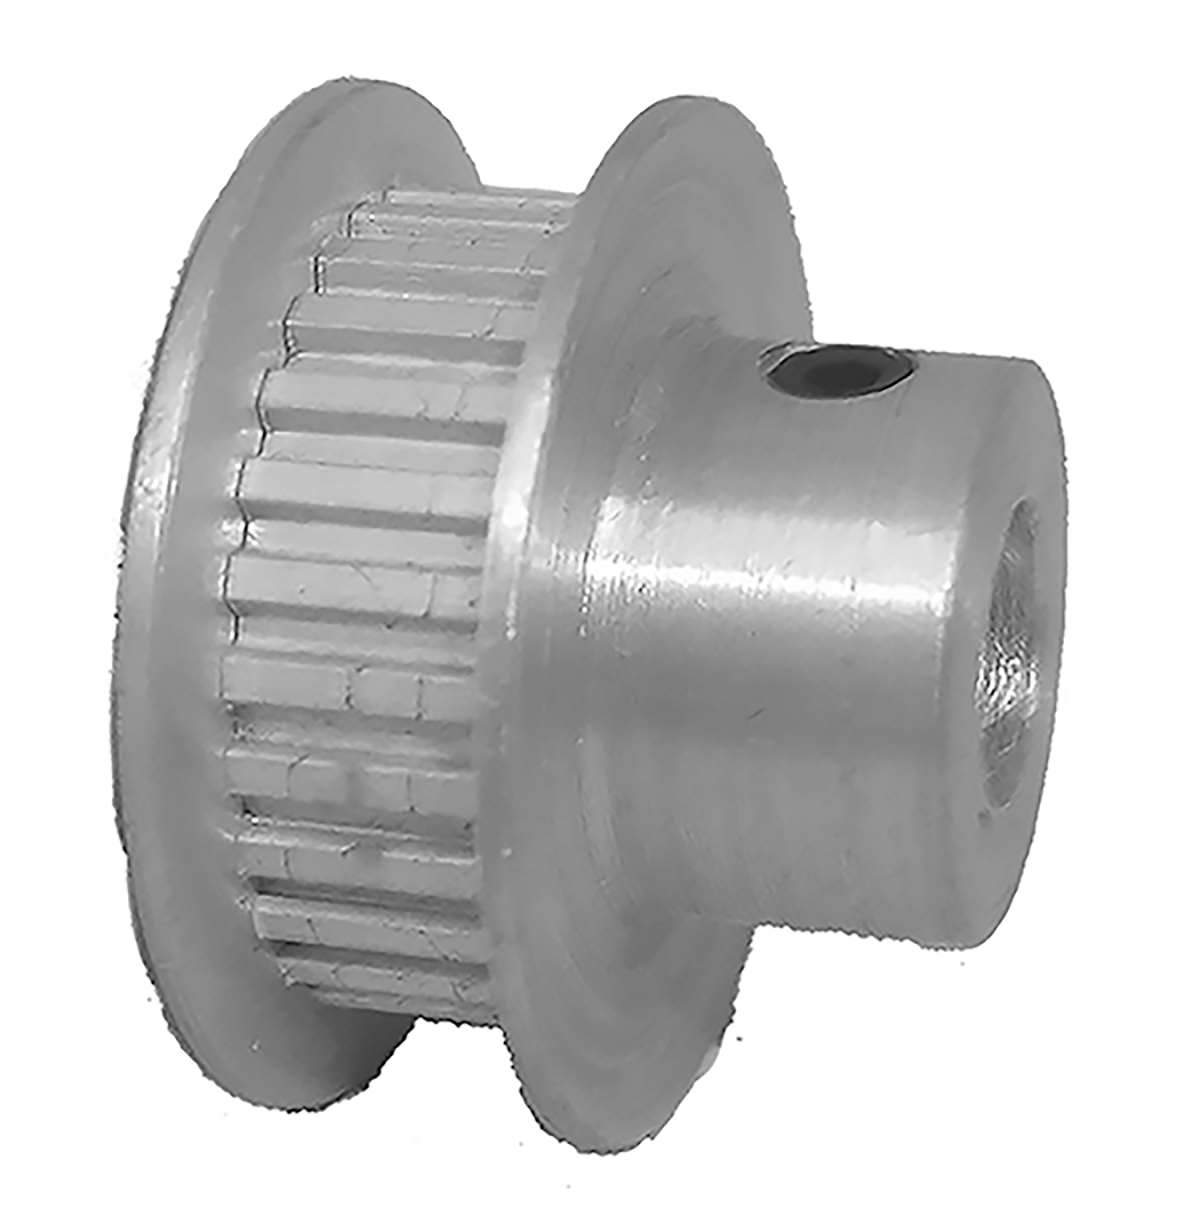 38LT187-6FA3 - Aluminum Imperial Pitch Pulleys